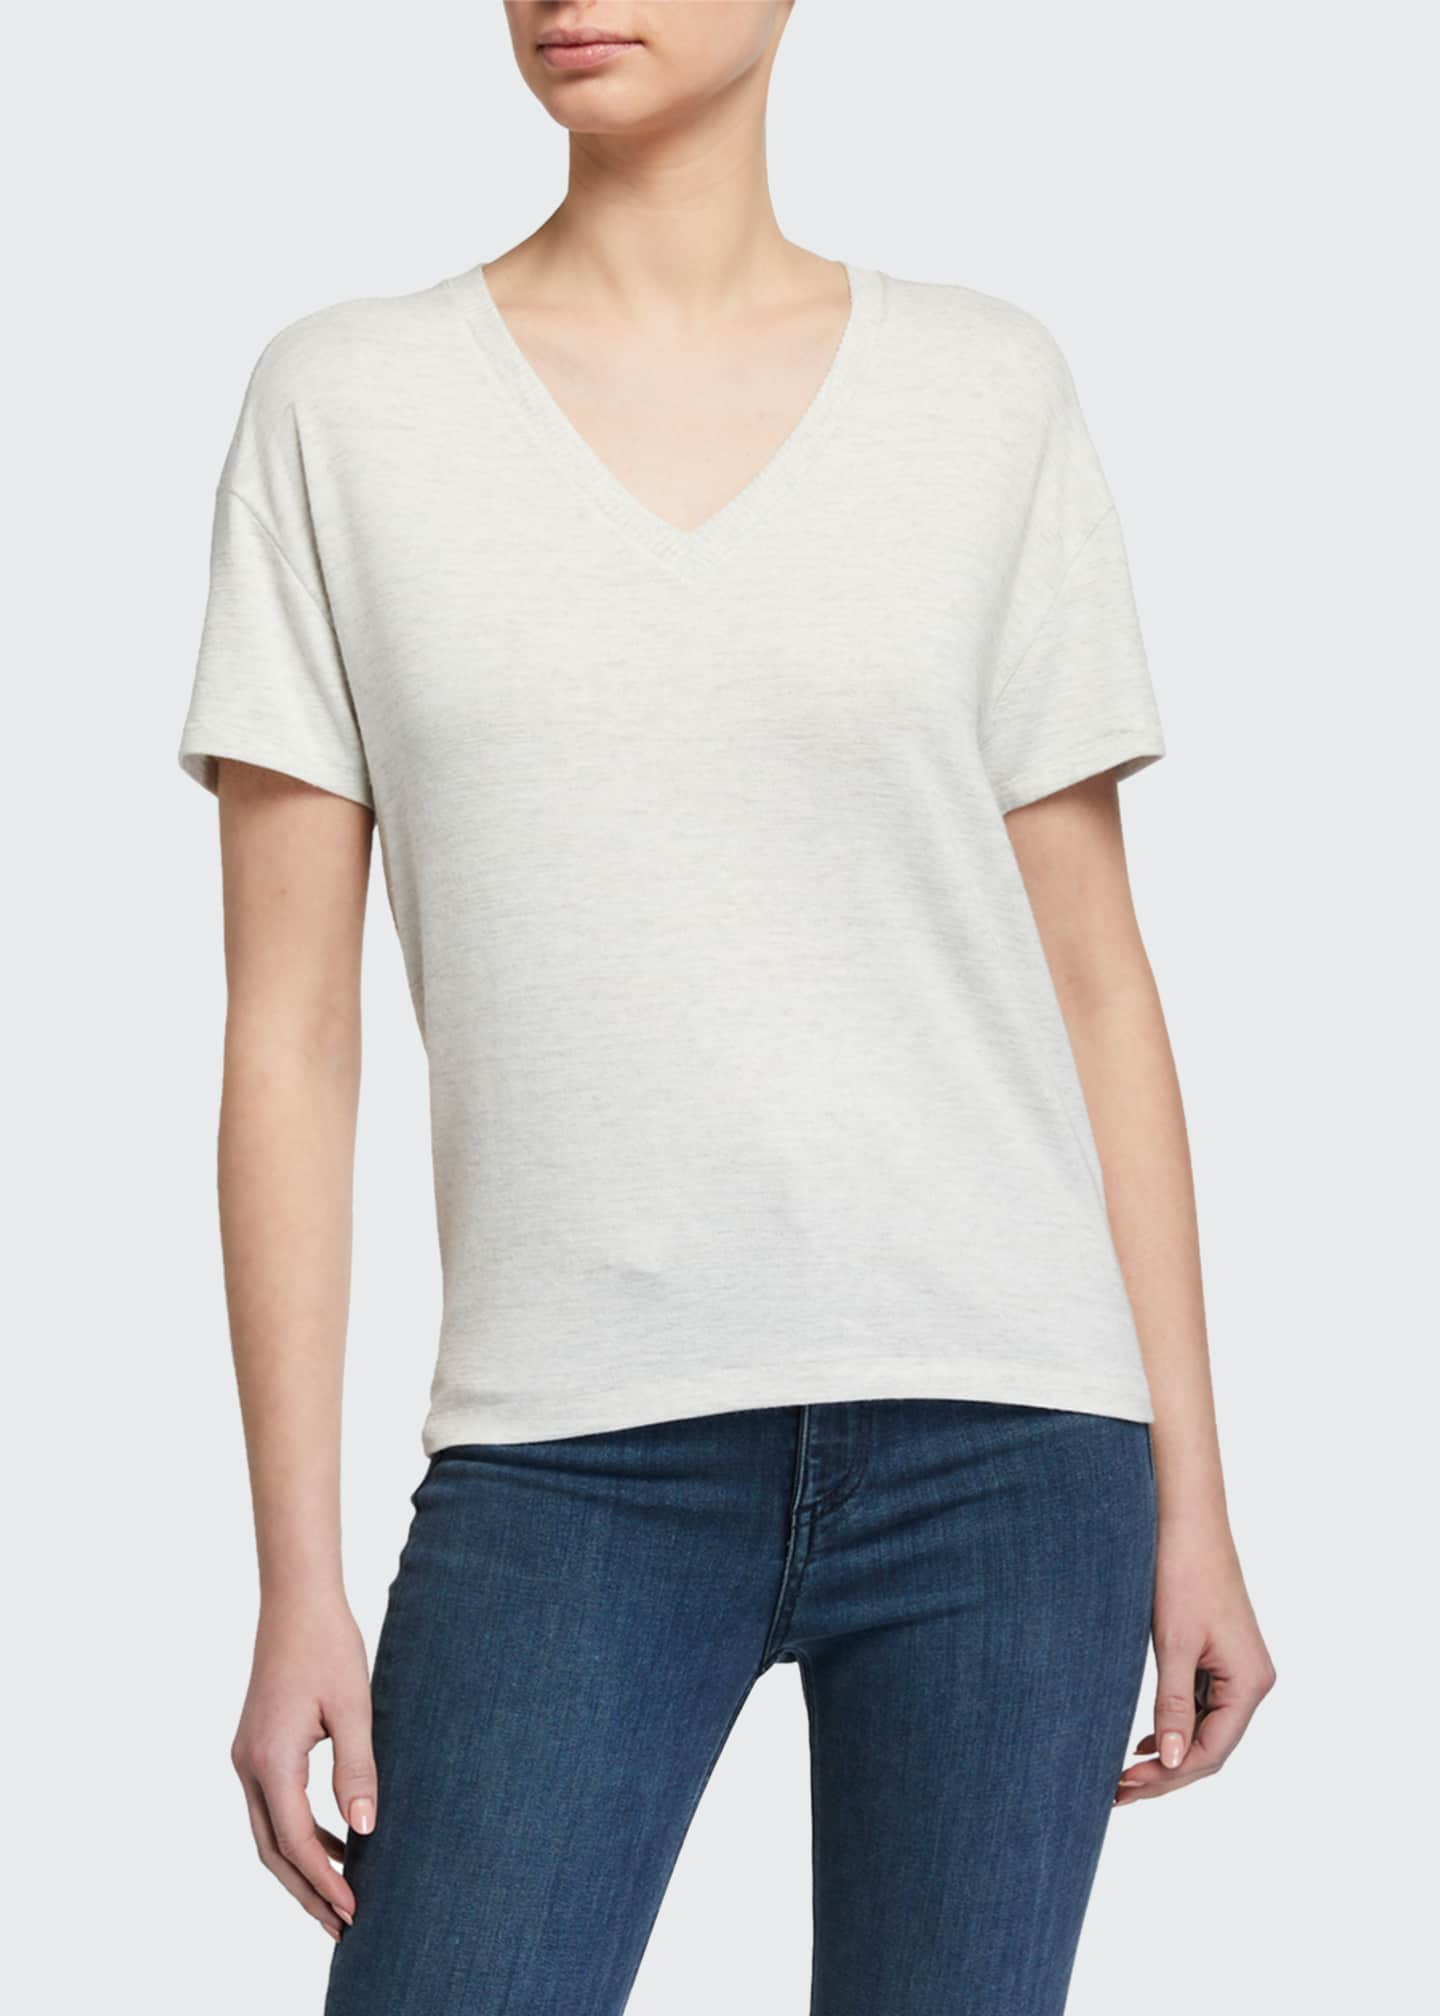 Image 3 of 3: The Knit V-Neck Tee